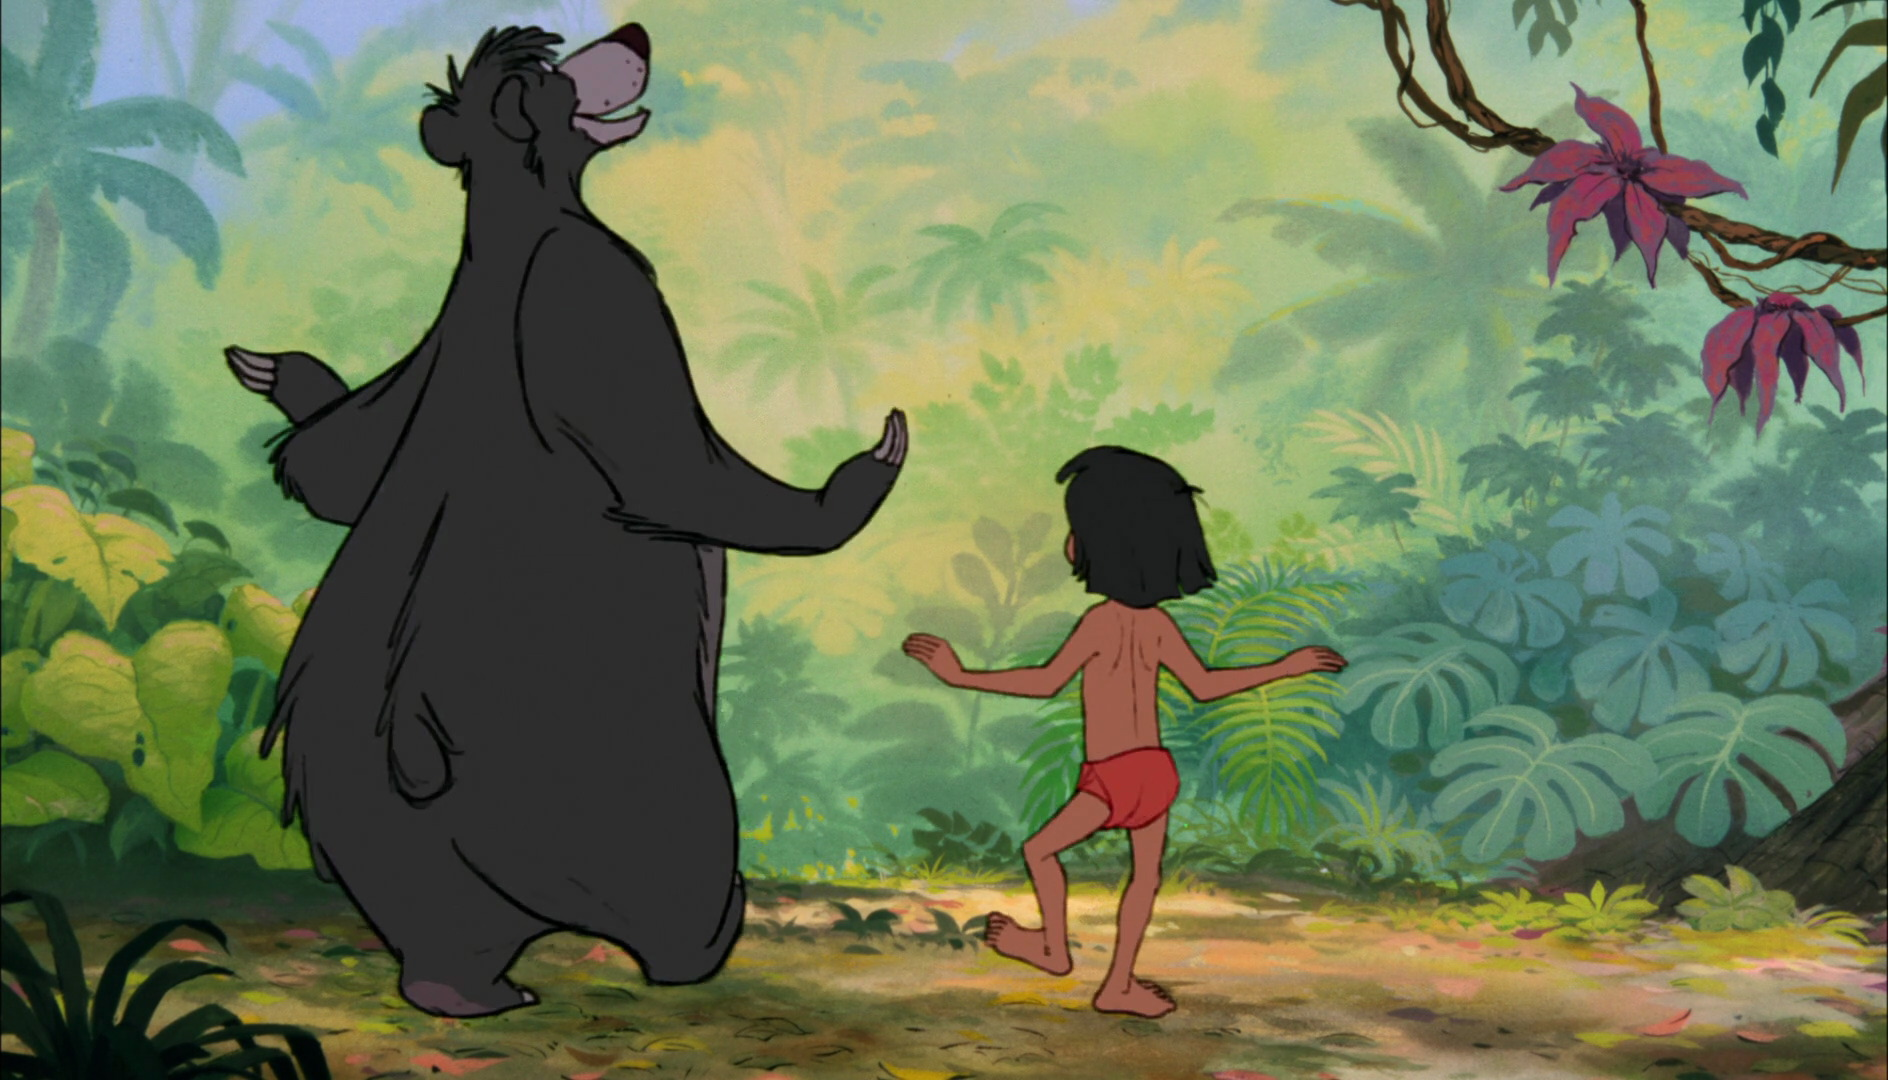 10 quotes from The Jungle Book that will make you think, smile and